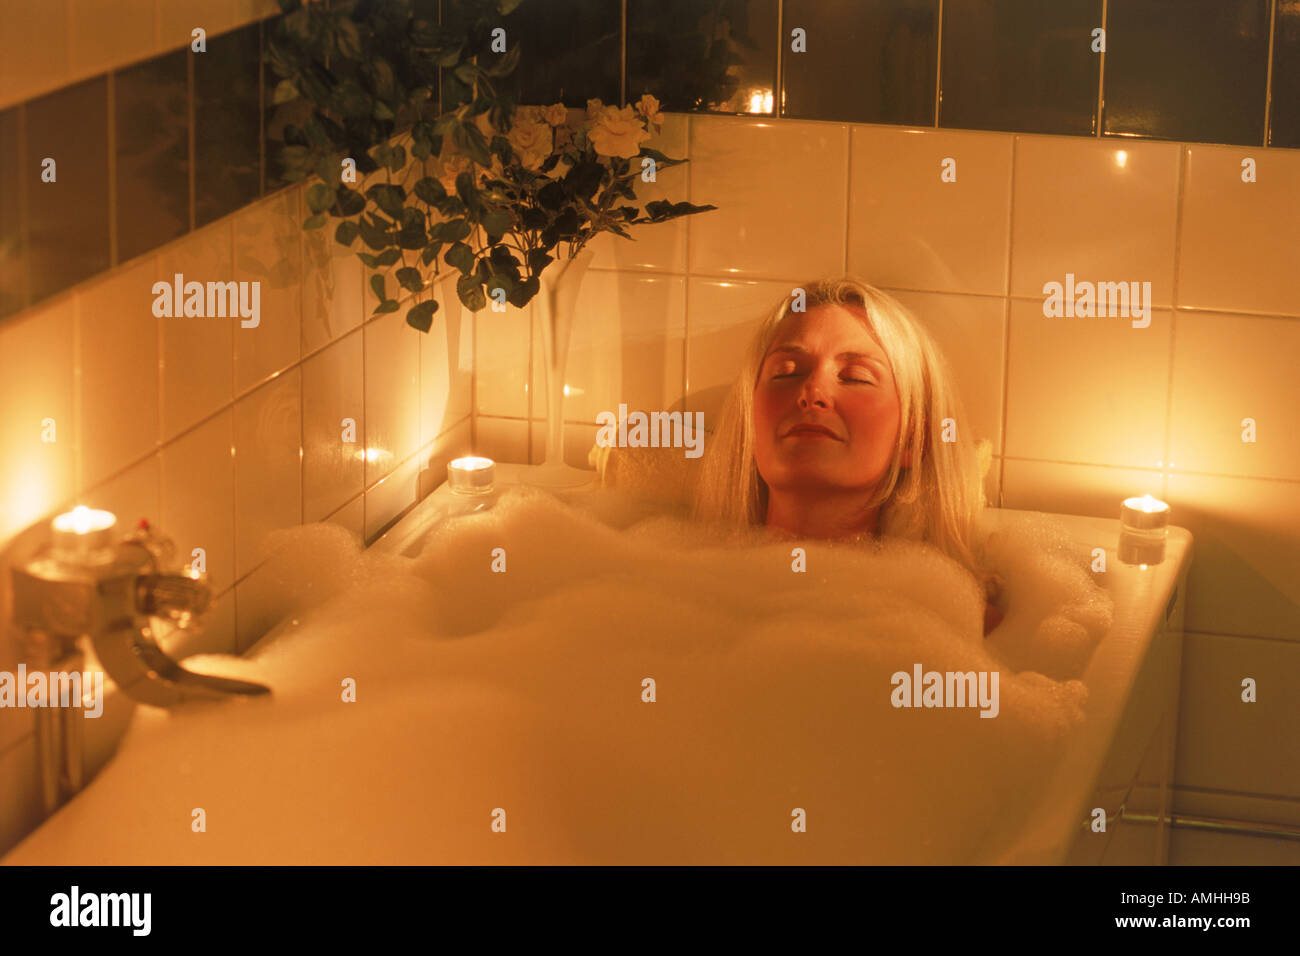 Candle lit bubble bath for relaxed blond woman Stock Photo: 4984218 ...